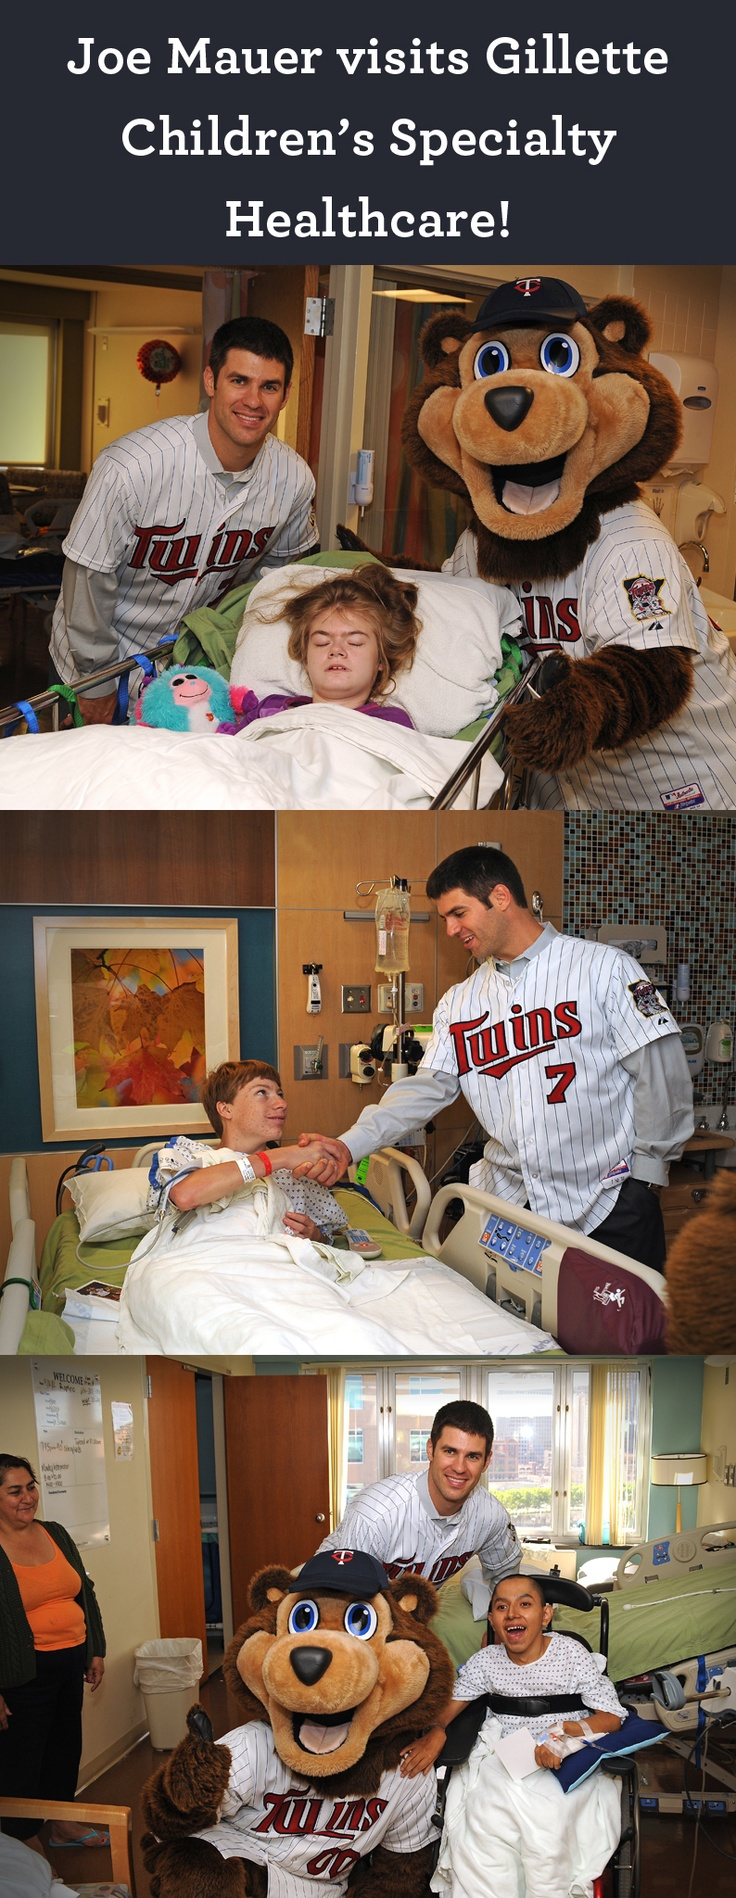 Thank you to #MNTwins player Joe Mauer and TC Bear for visiting kids at Gillette